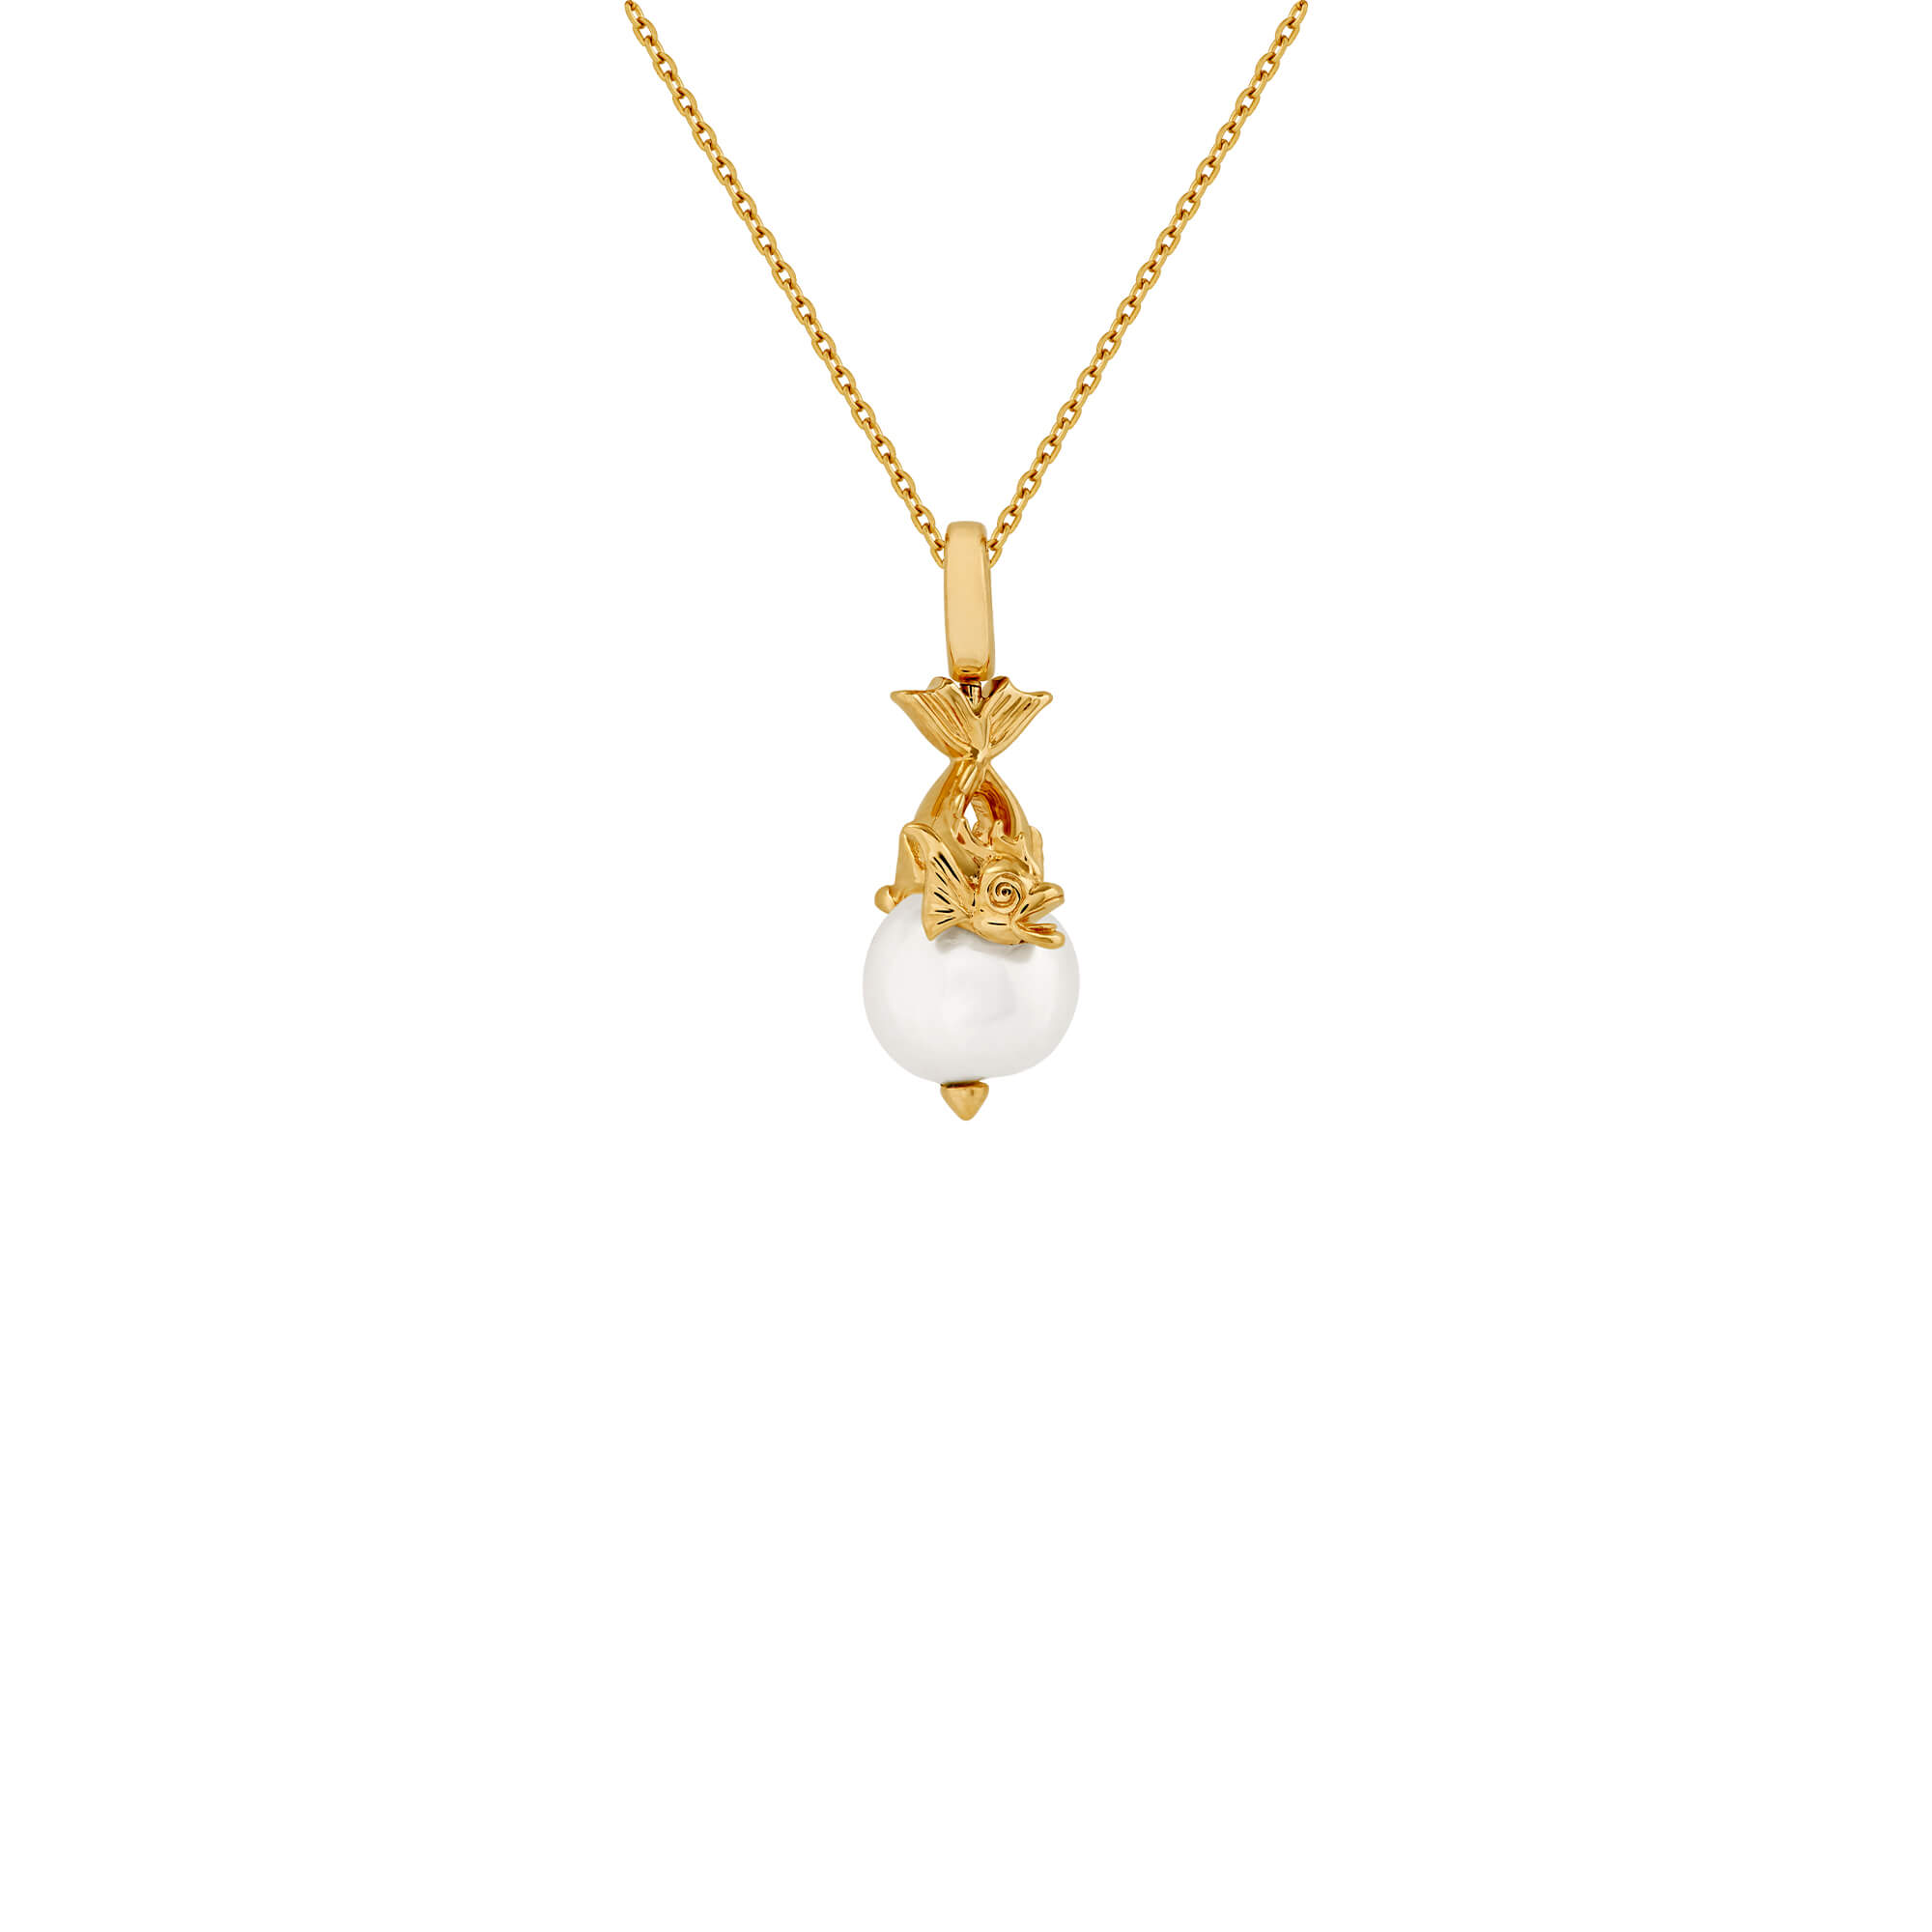 Pisces Yellow Gold and White Pearl Necklace | Astro Balls